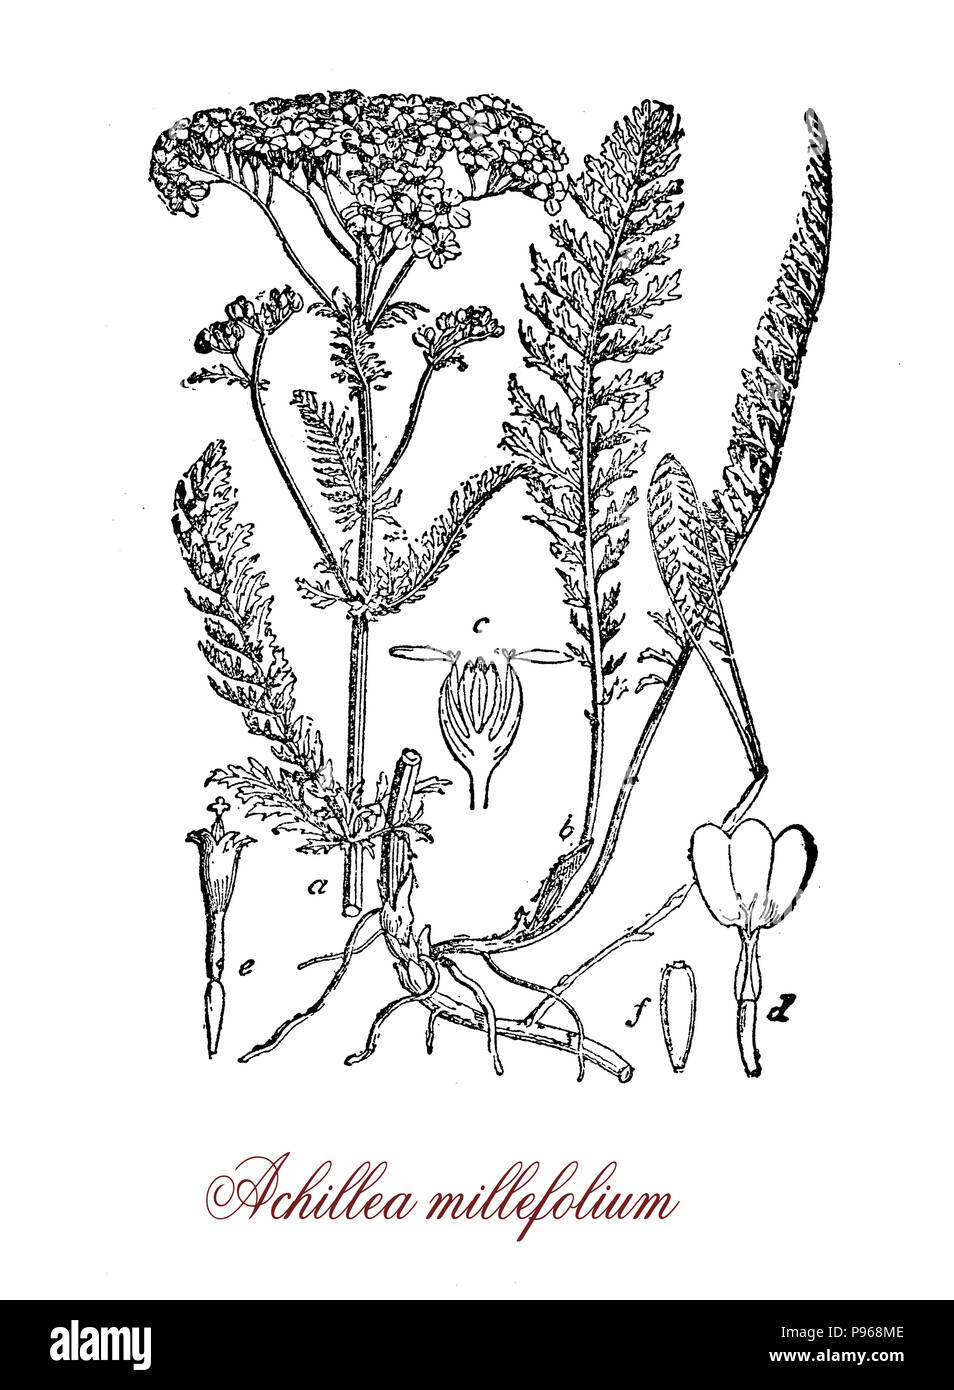 Achillea millefolium or common yarrow, flowering plant used in landscaping and in traditional medicine as astringent, old illustration - Stock Image